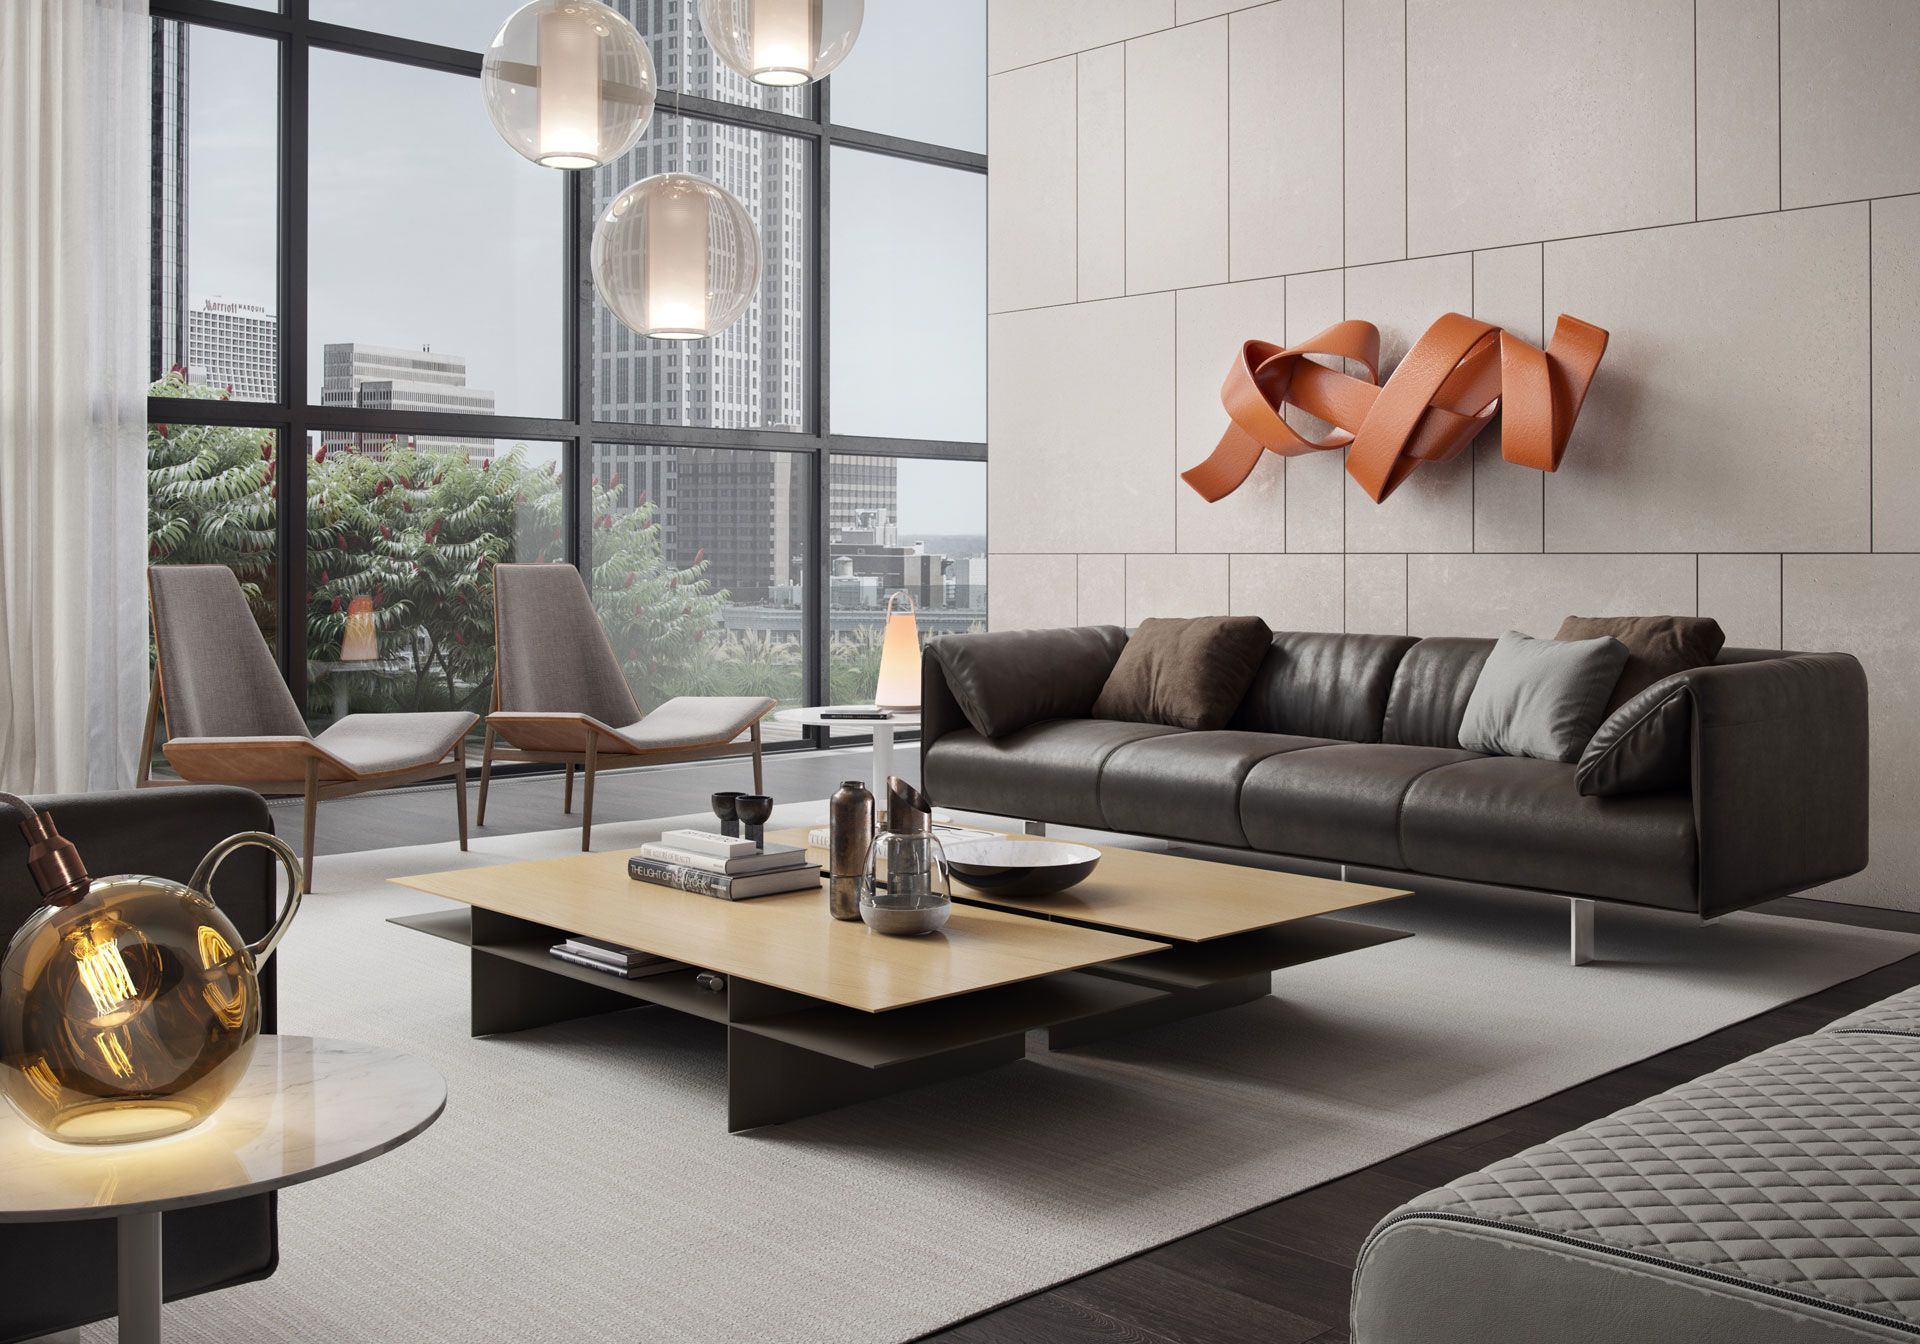 The variety of contemporary living room furniture sets